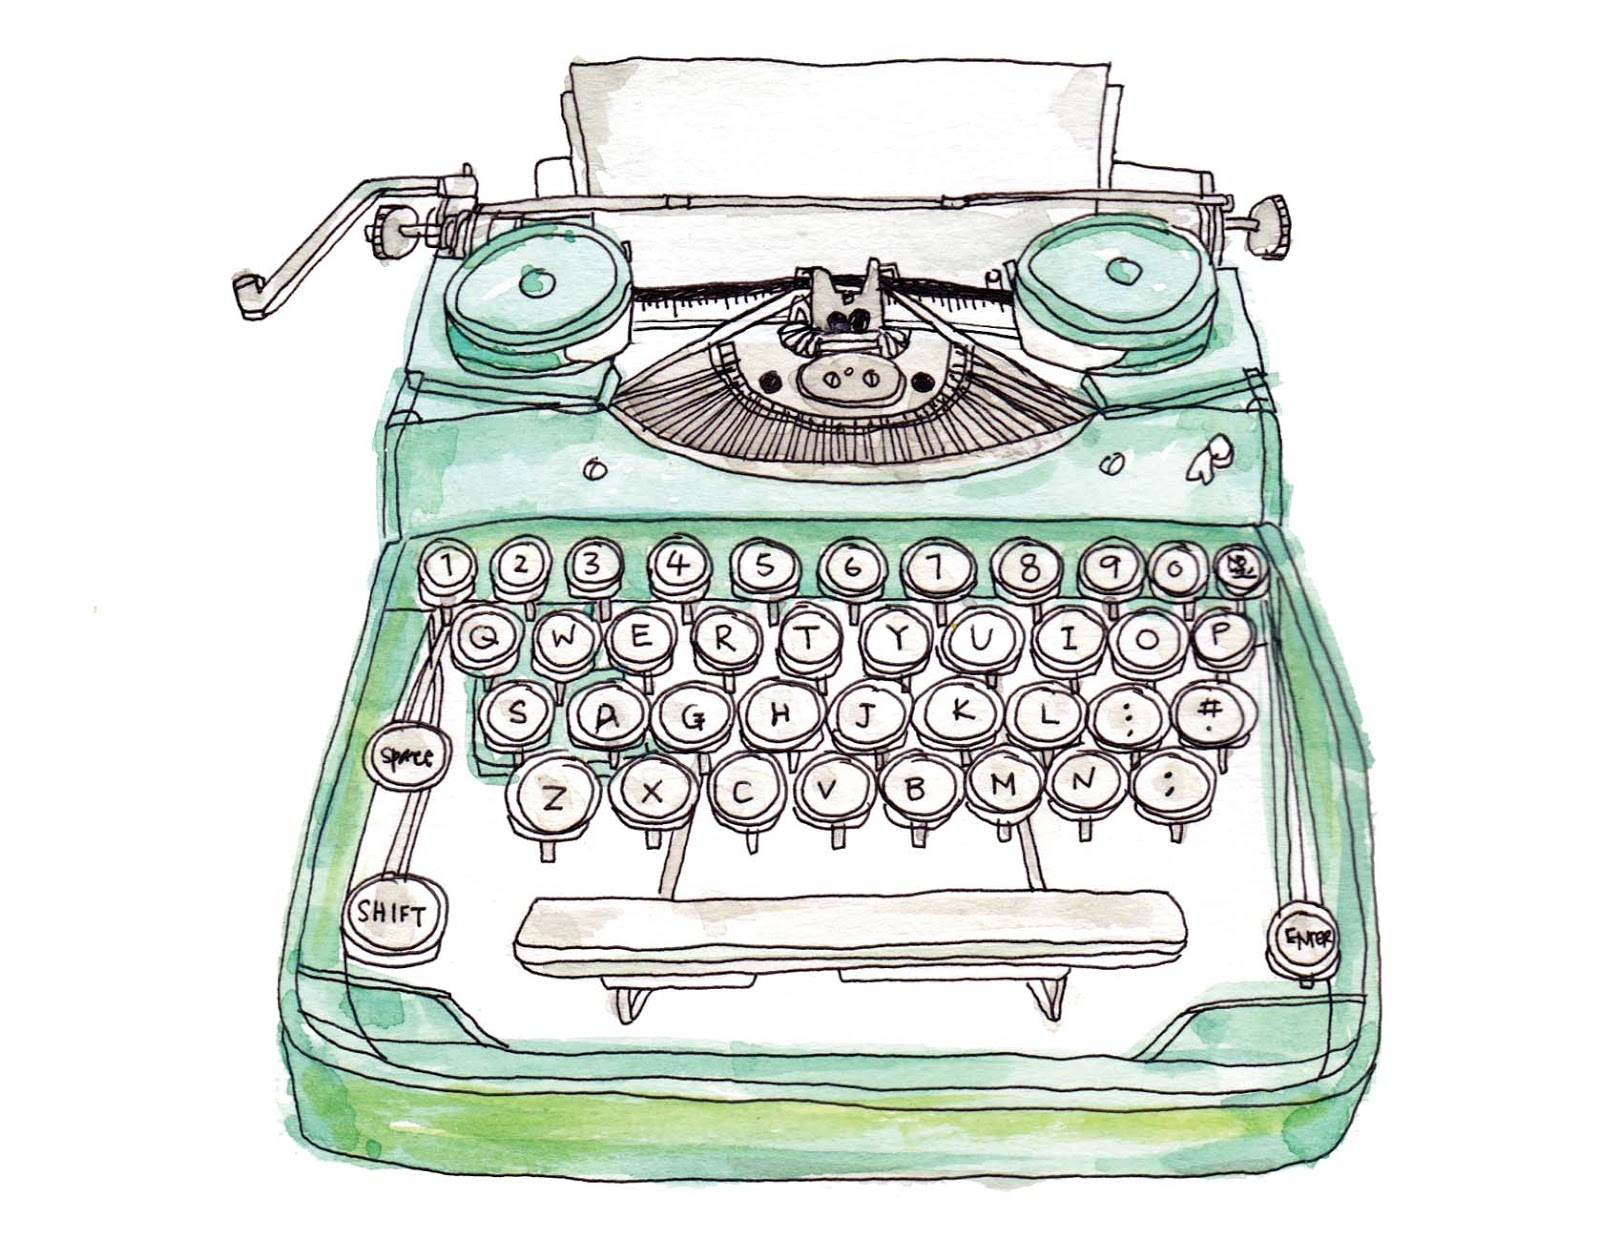 Writer's Block Or Life Block? - Another Beautiful Rhyme